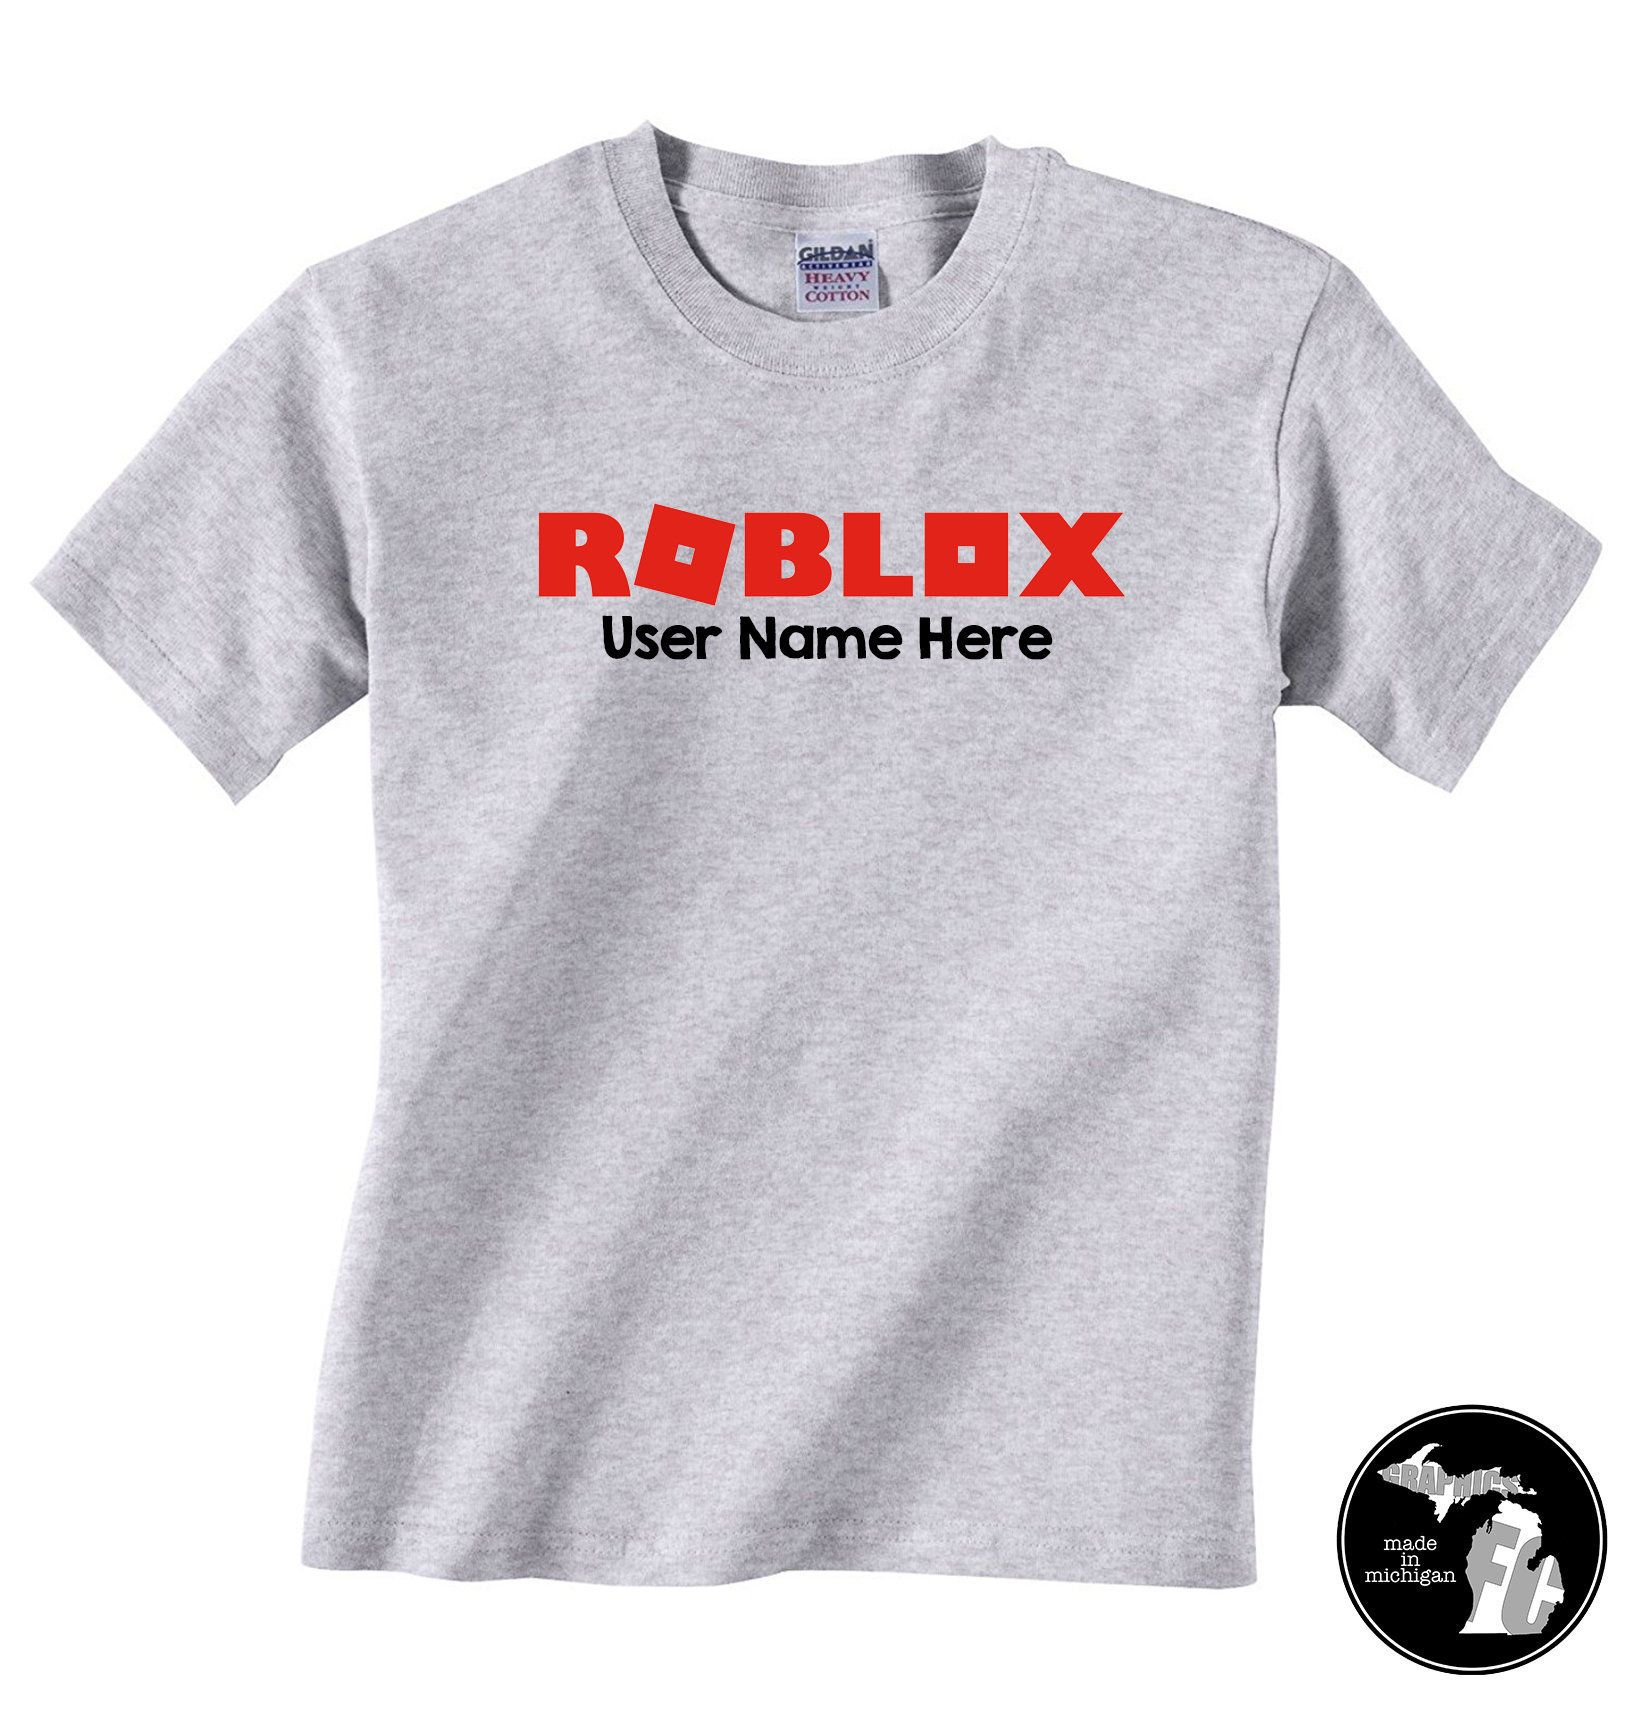 Roblox T Shirt With Personal User Name Kids Shirt Bloxburg